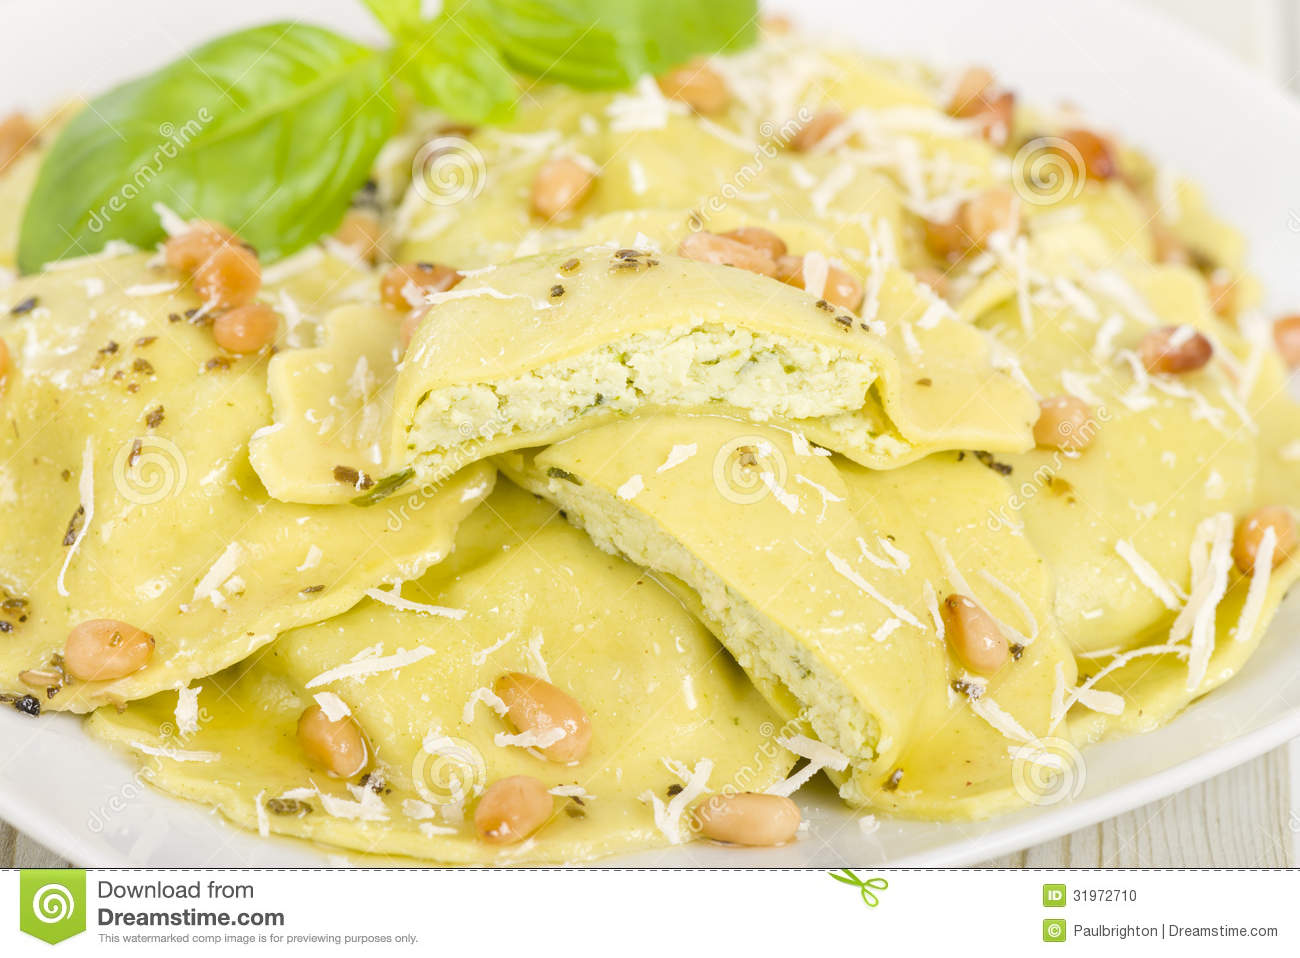 Ricotta Cheese Eggs Ravioli Butter Sauces The Fresh Homemade Ricotta